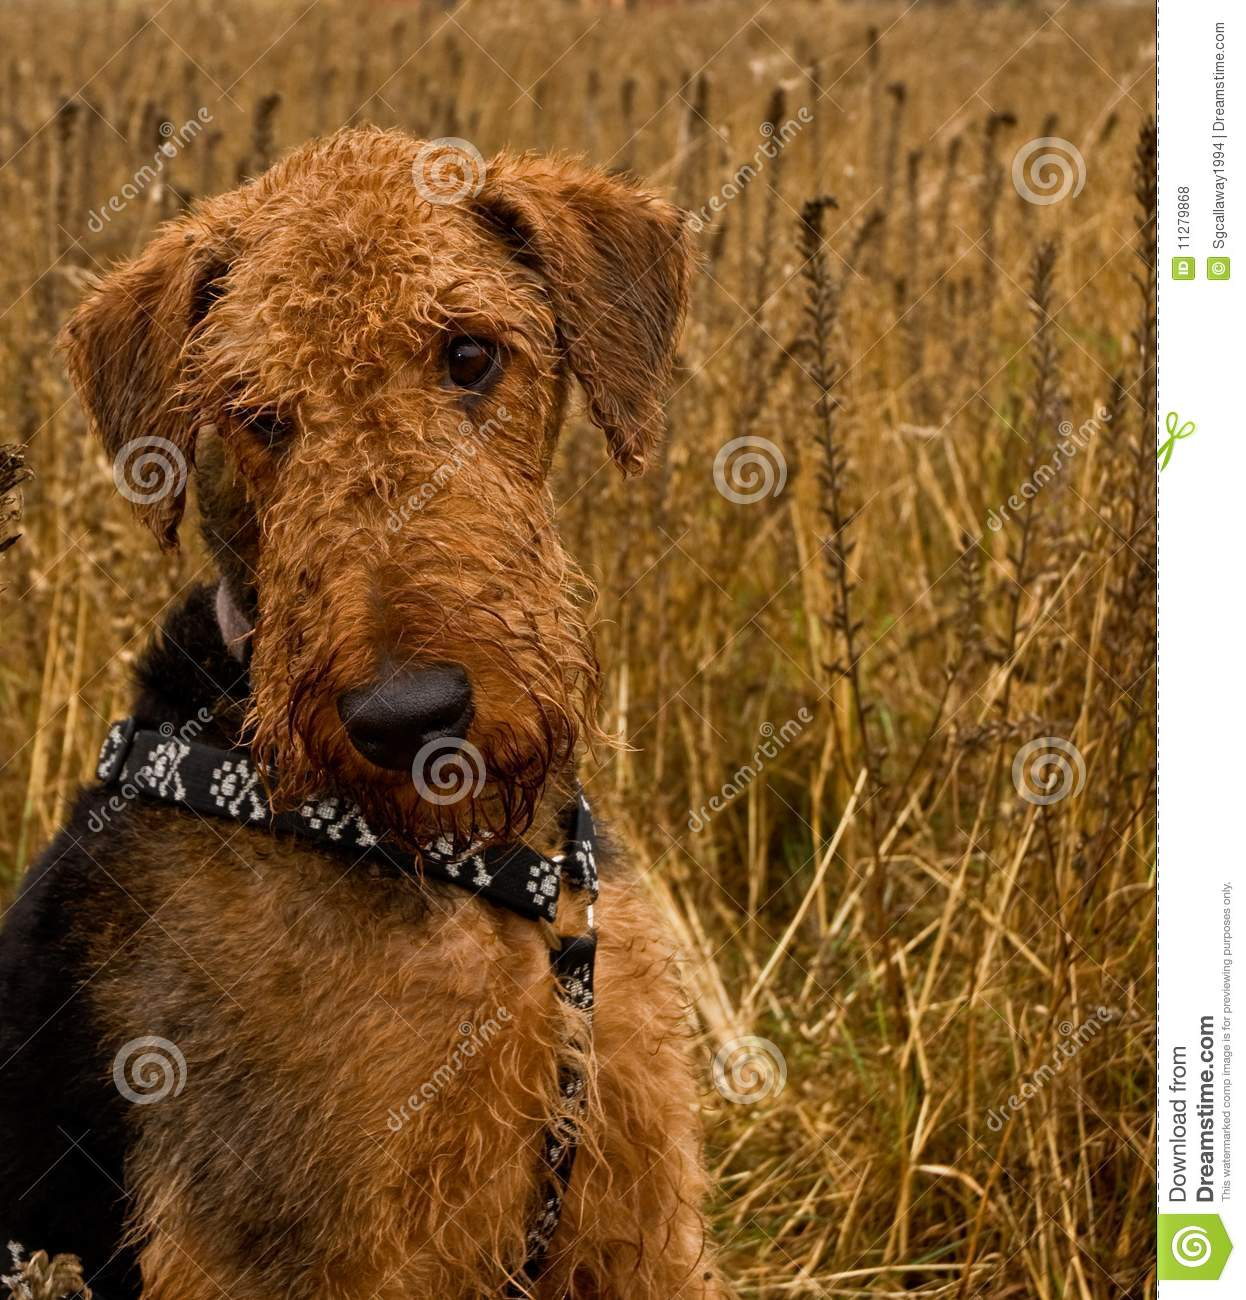 Wheat Red Dog http://www.dreamstime.com/royalty-free-stock-photos-bashful-airedale-terrier-dog-sits-wheat-field-image11279868